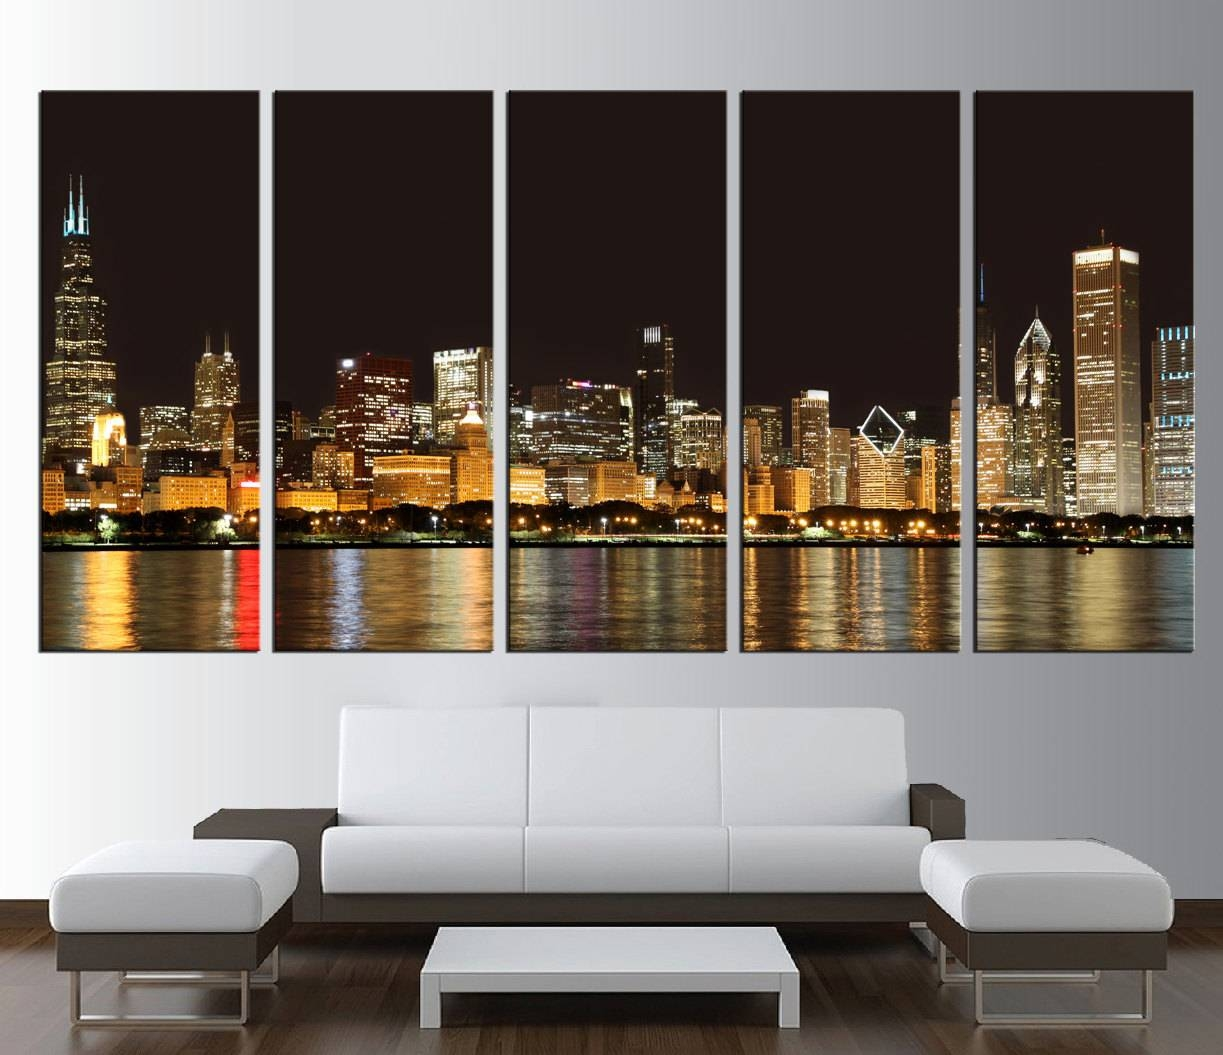 Wall Art: Breathtaking Images Of Large Horizontal Wall Art Inside Most Recently Released Horizontal Canvas Wall Art (View 4 of 20)